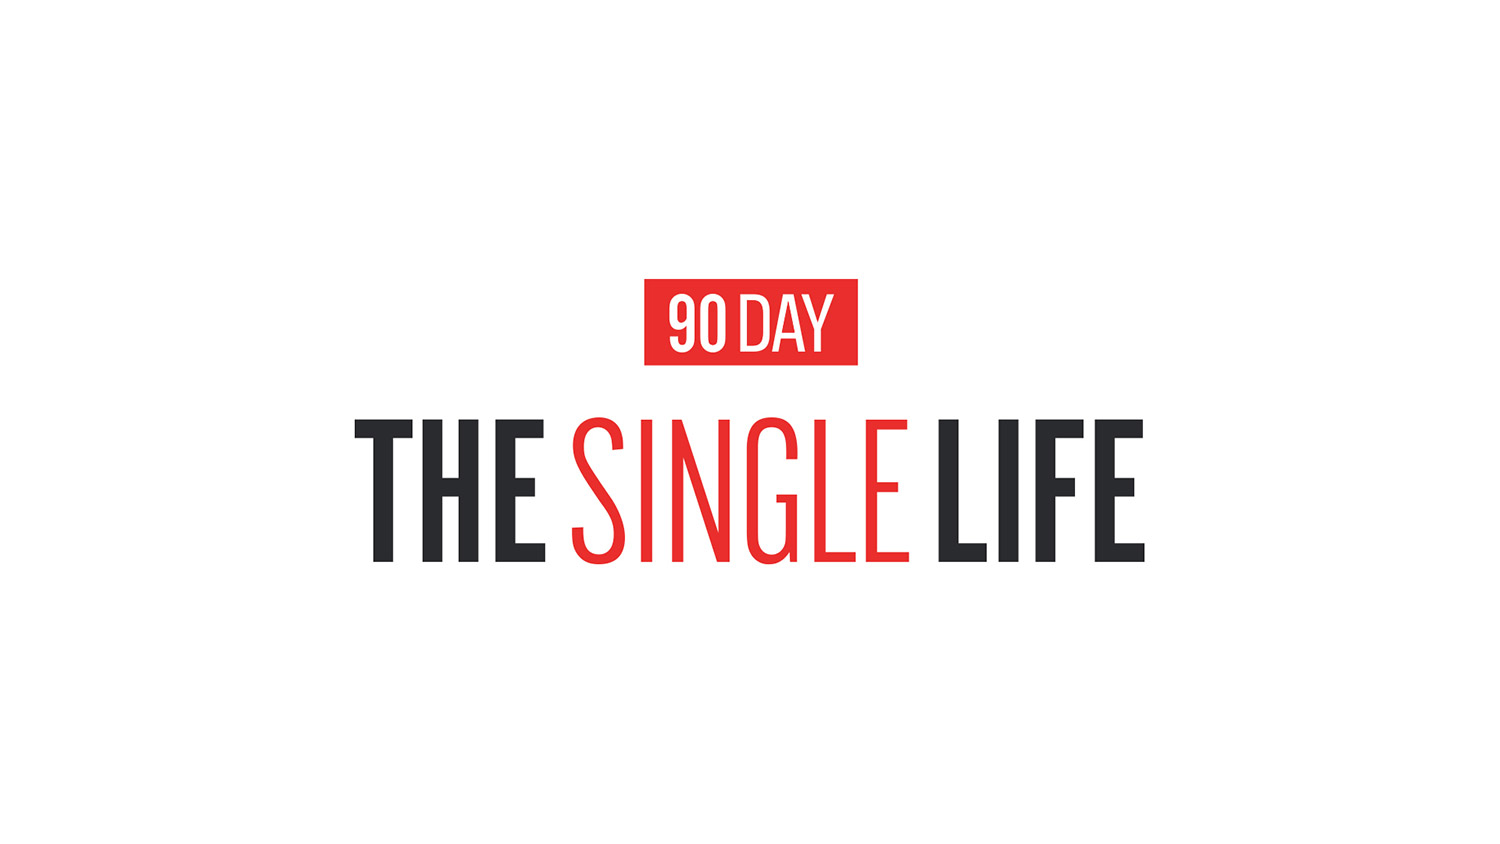 90 Day The Single Life